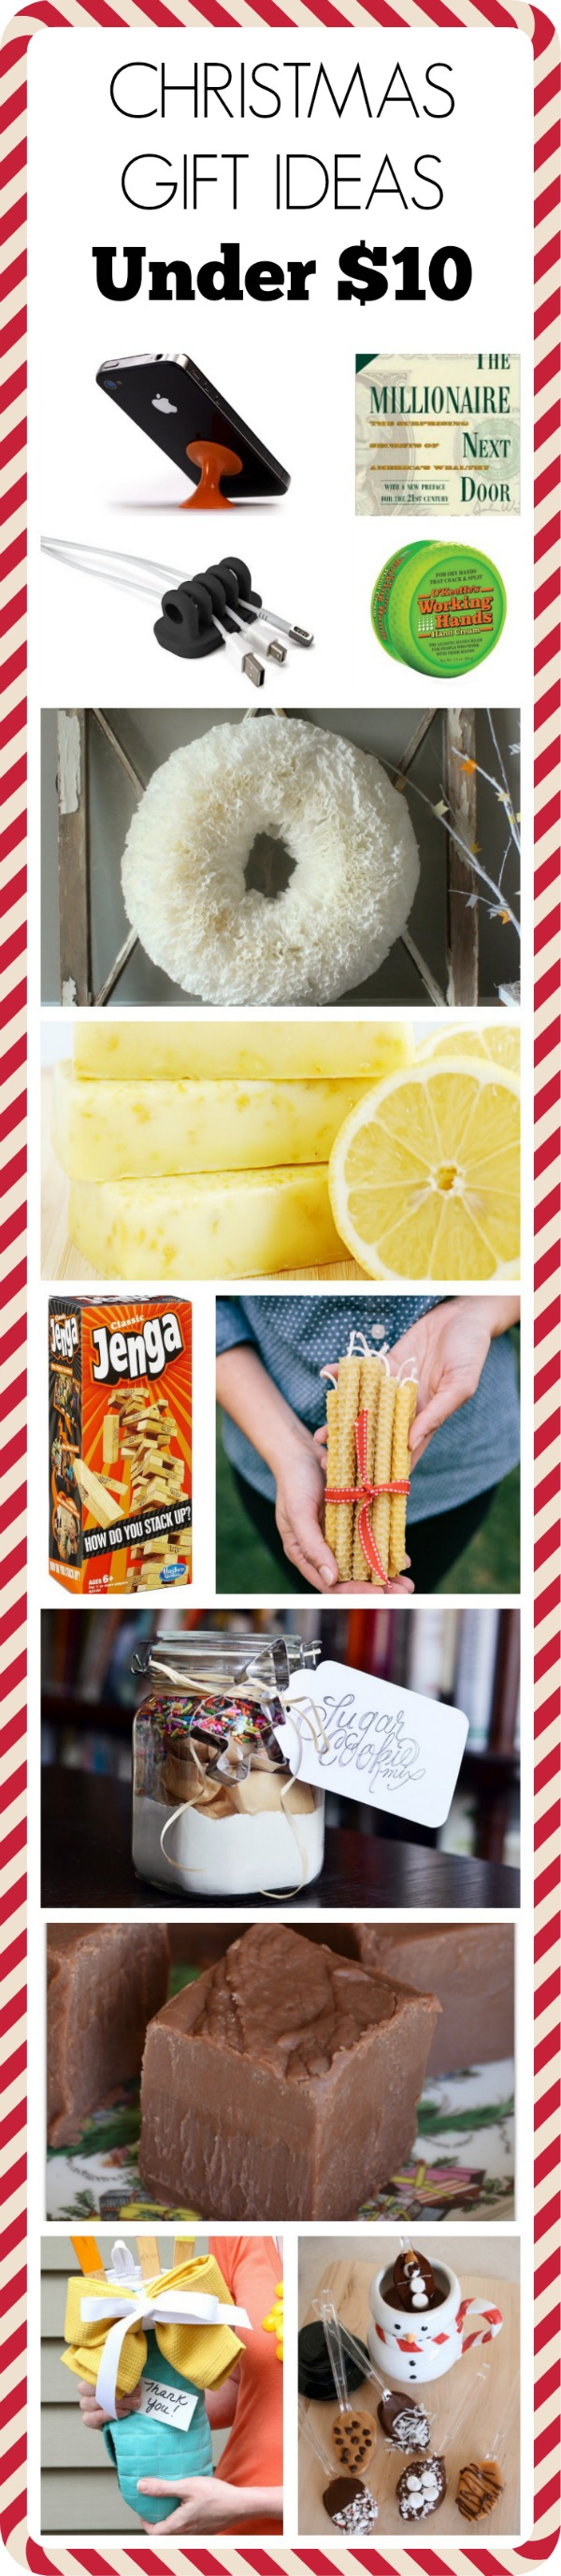 Christmas Gift Ideas Under 10.Great Christmas Gift Ideas Under 10